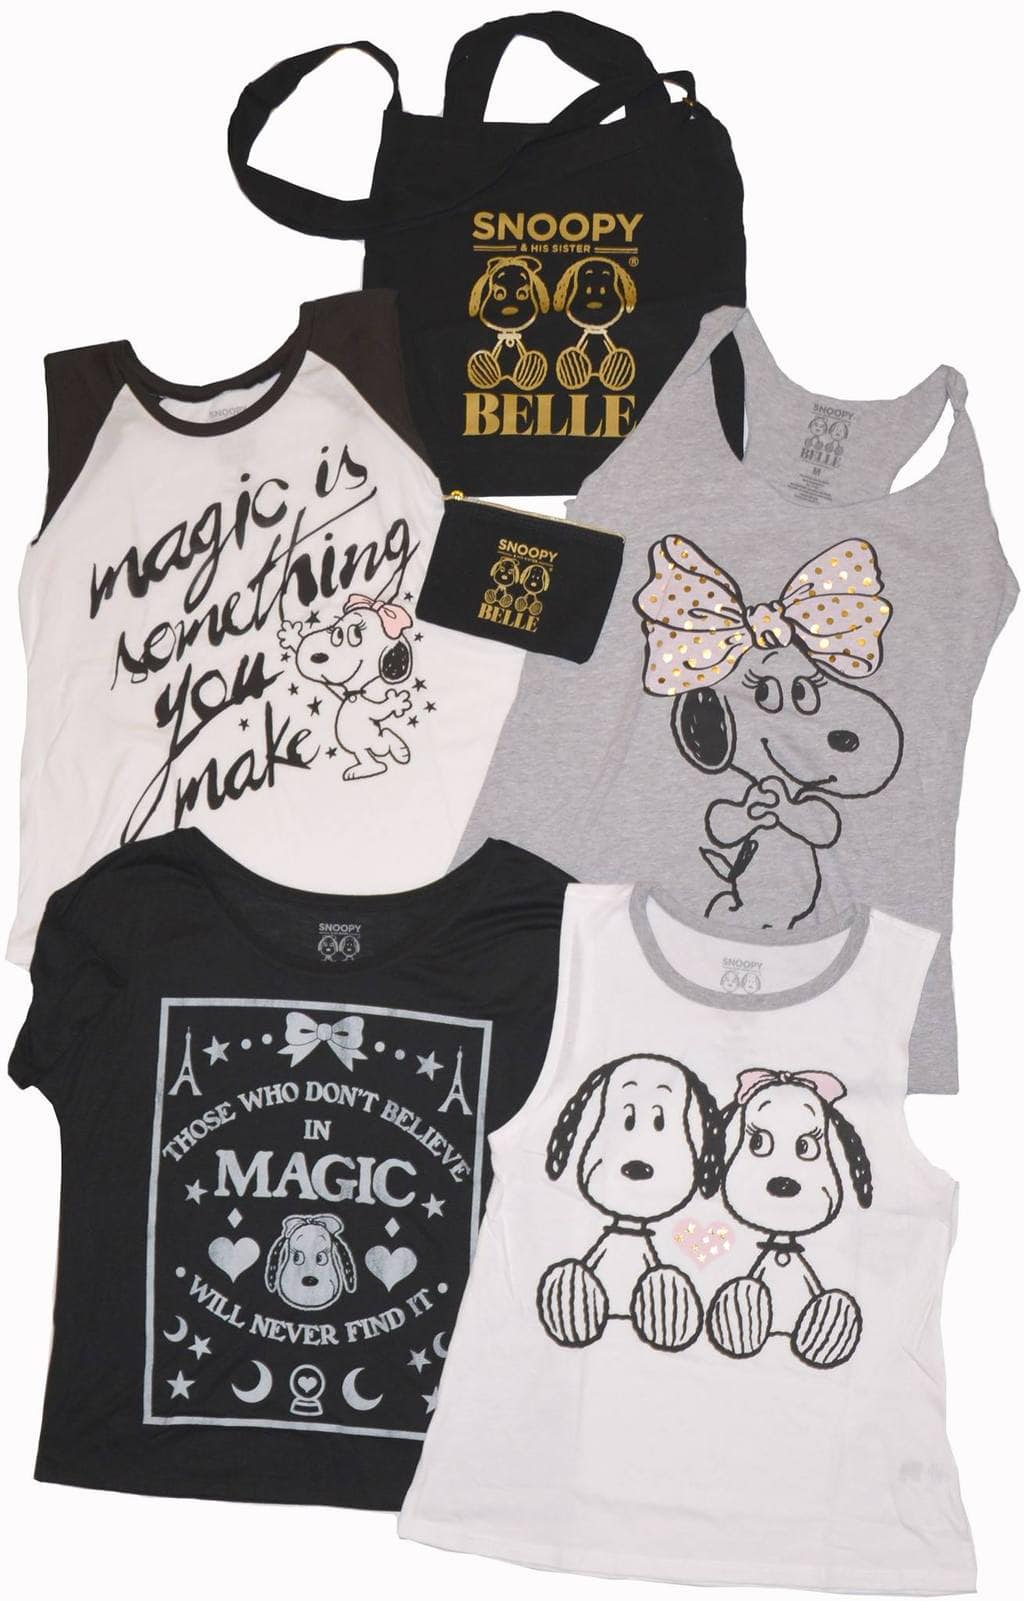 Win A Snoopy and Belle Tote and Tee Set #Giveaway ends 10/